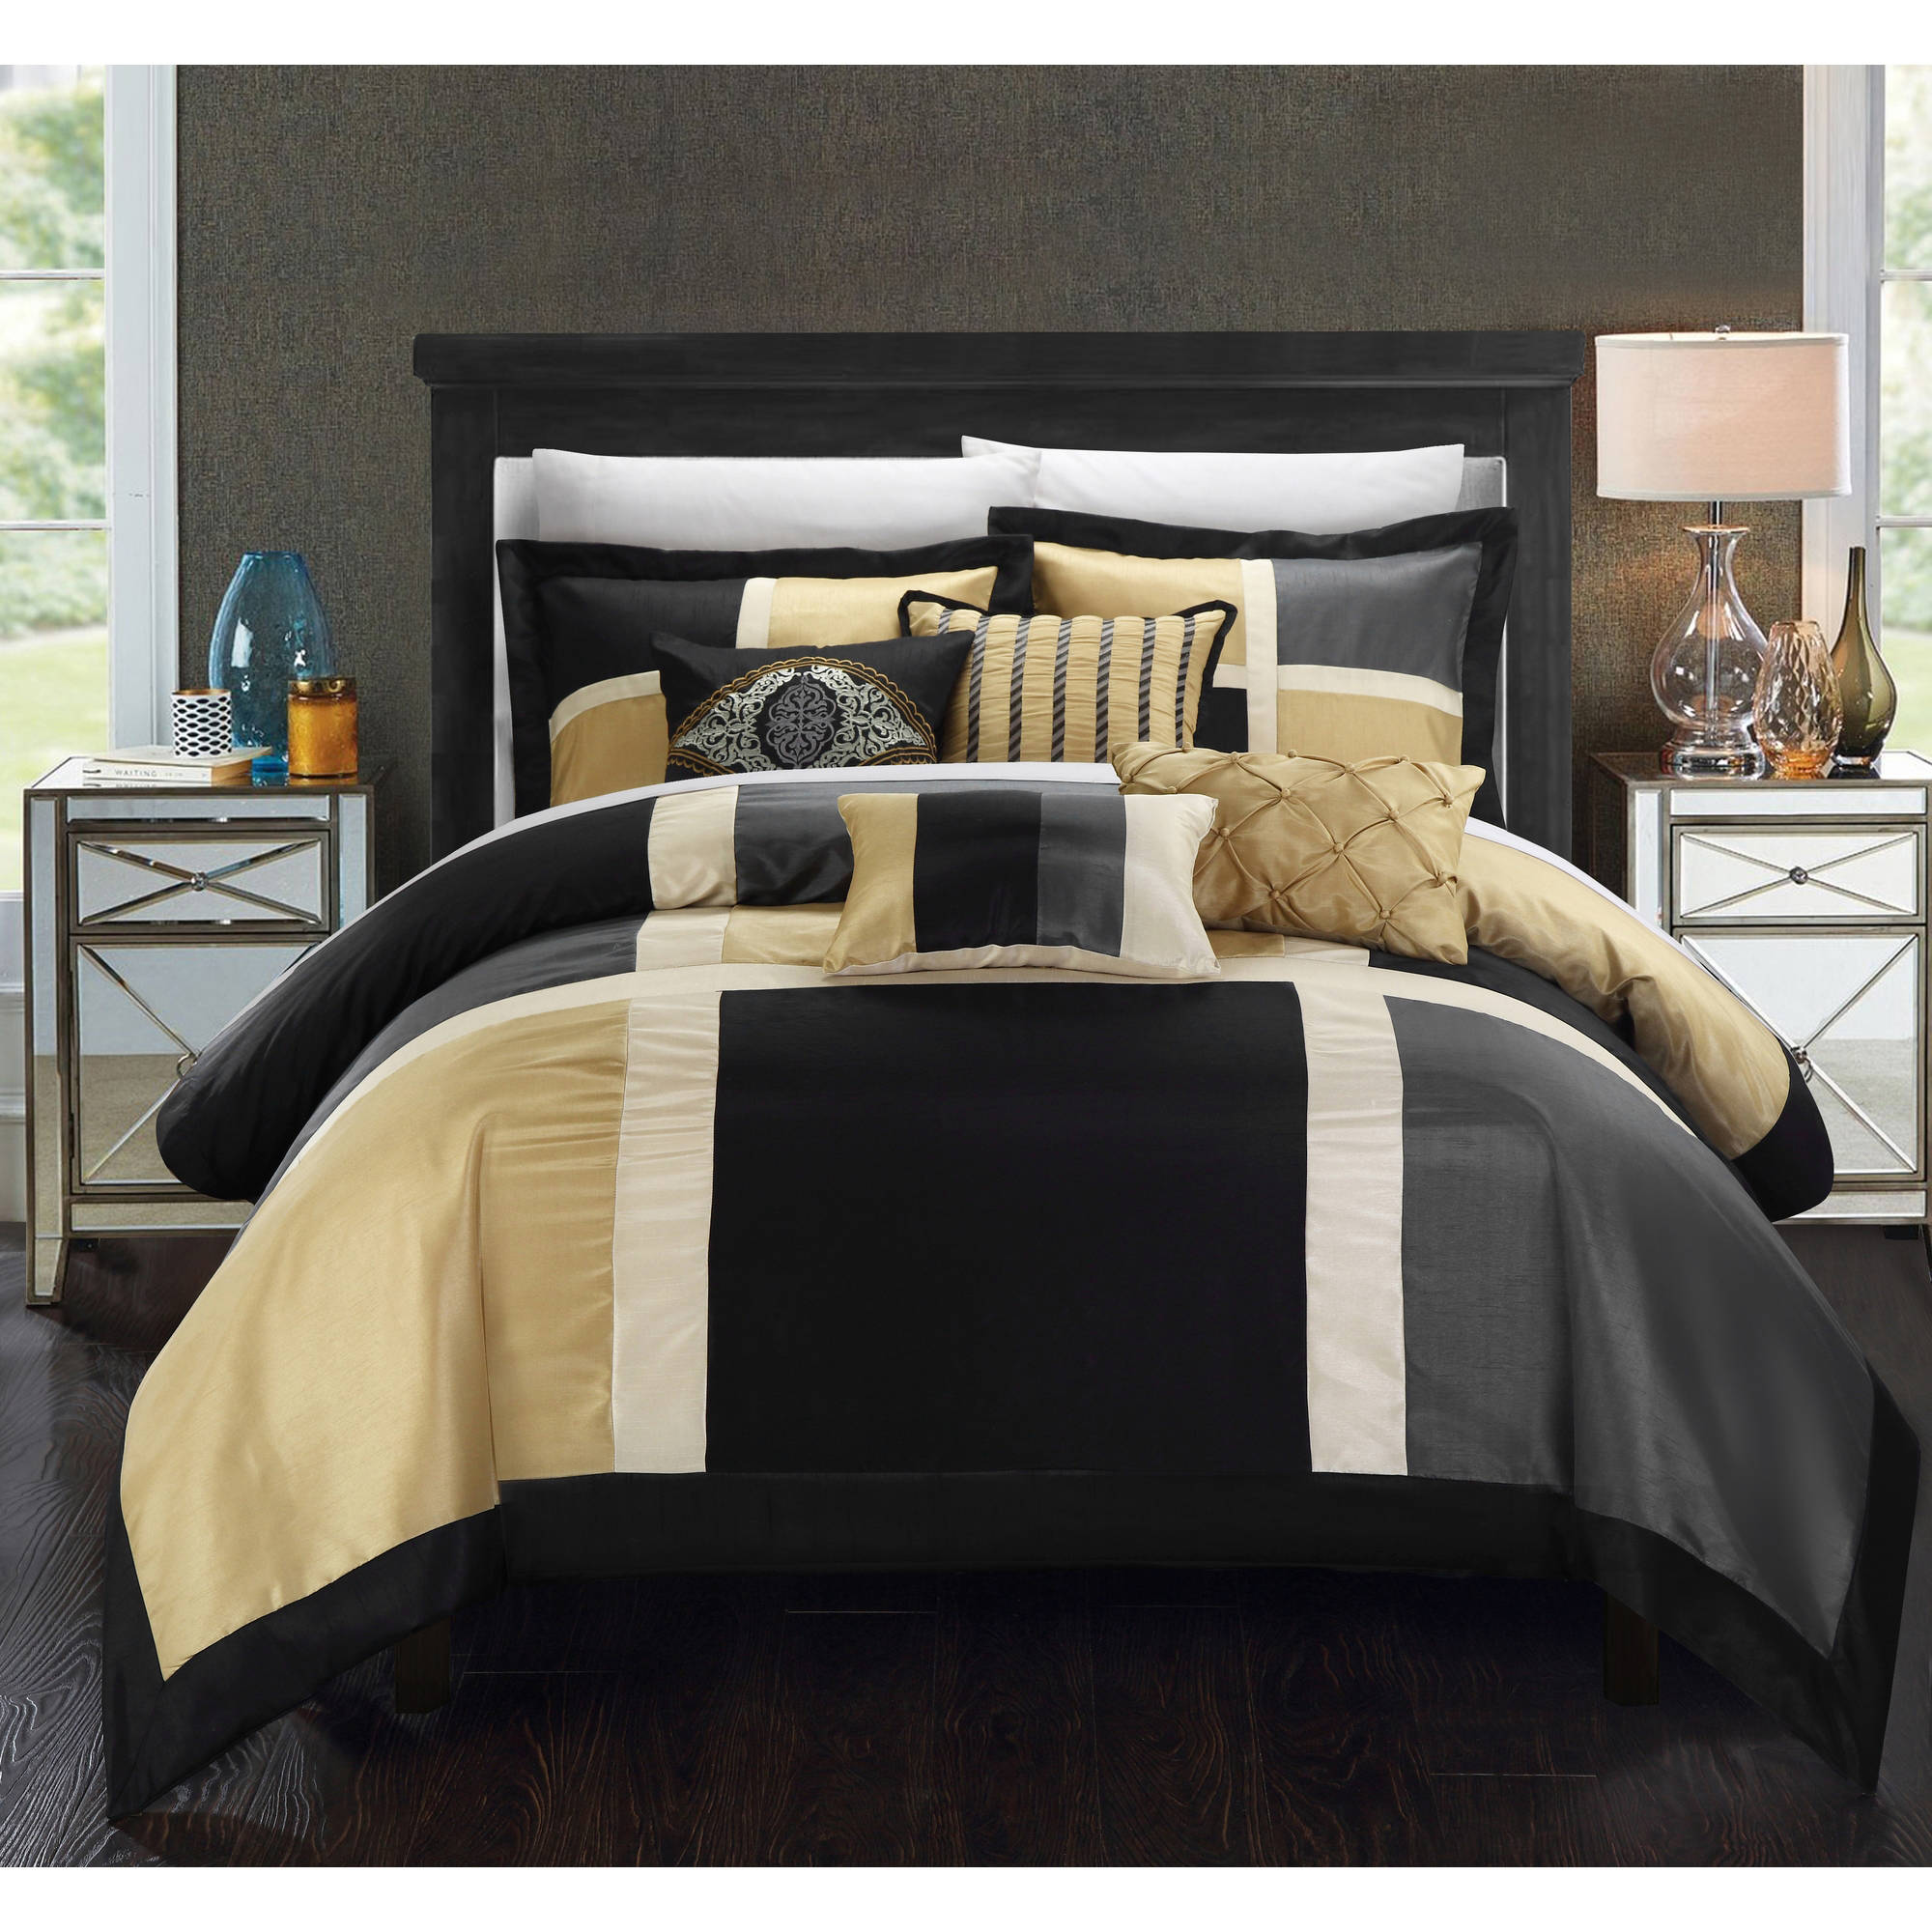 Filomena 7-Piece Bedding Comforter Set